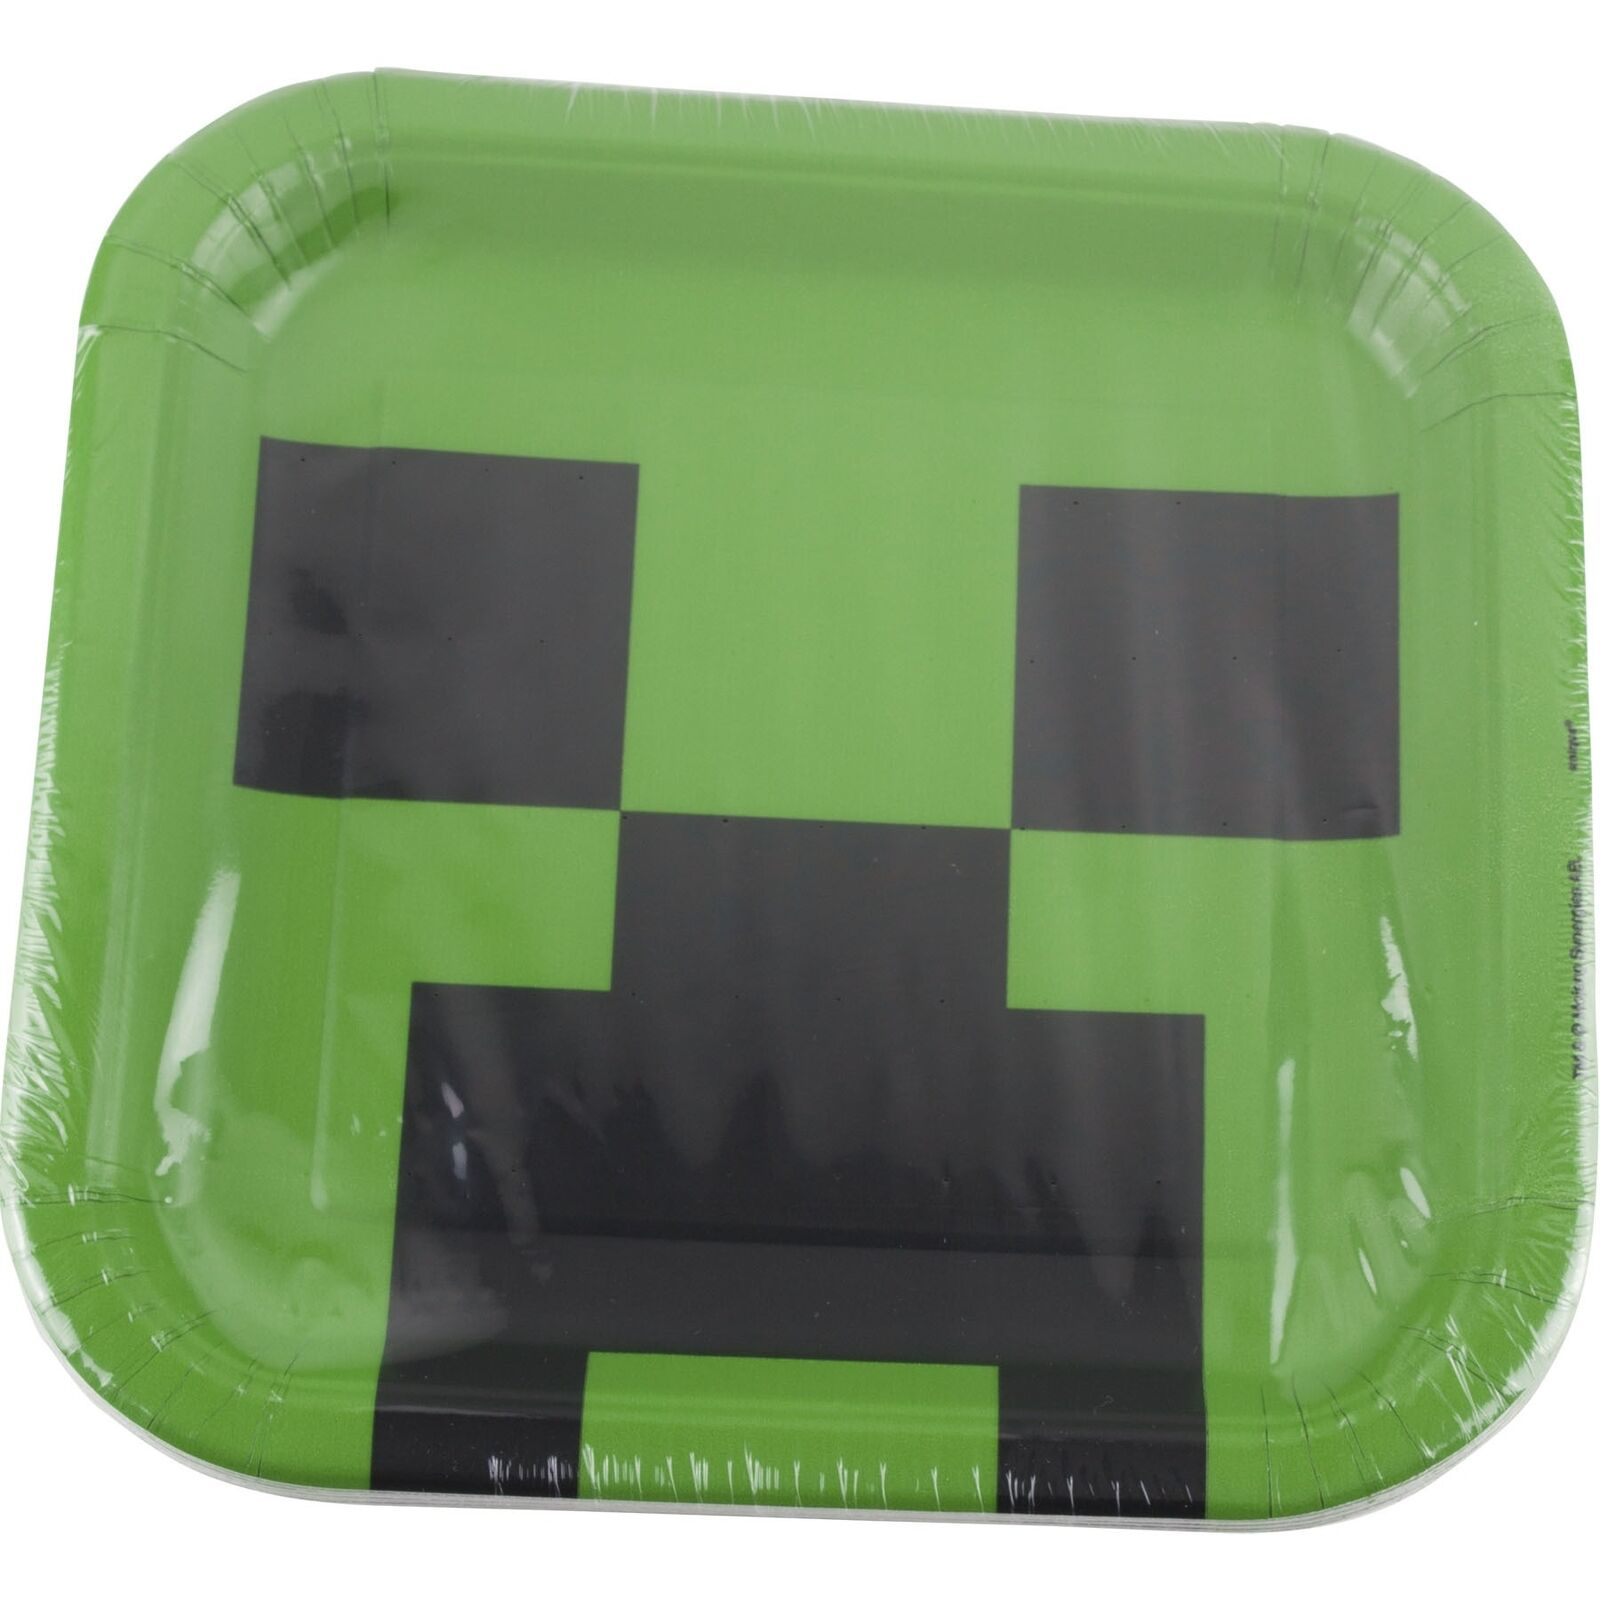 Minecraft Birthday Party Supplies 8 Large Cake Food Plates